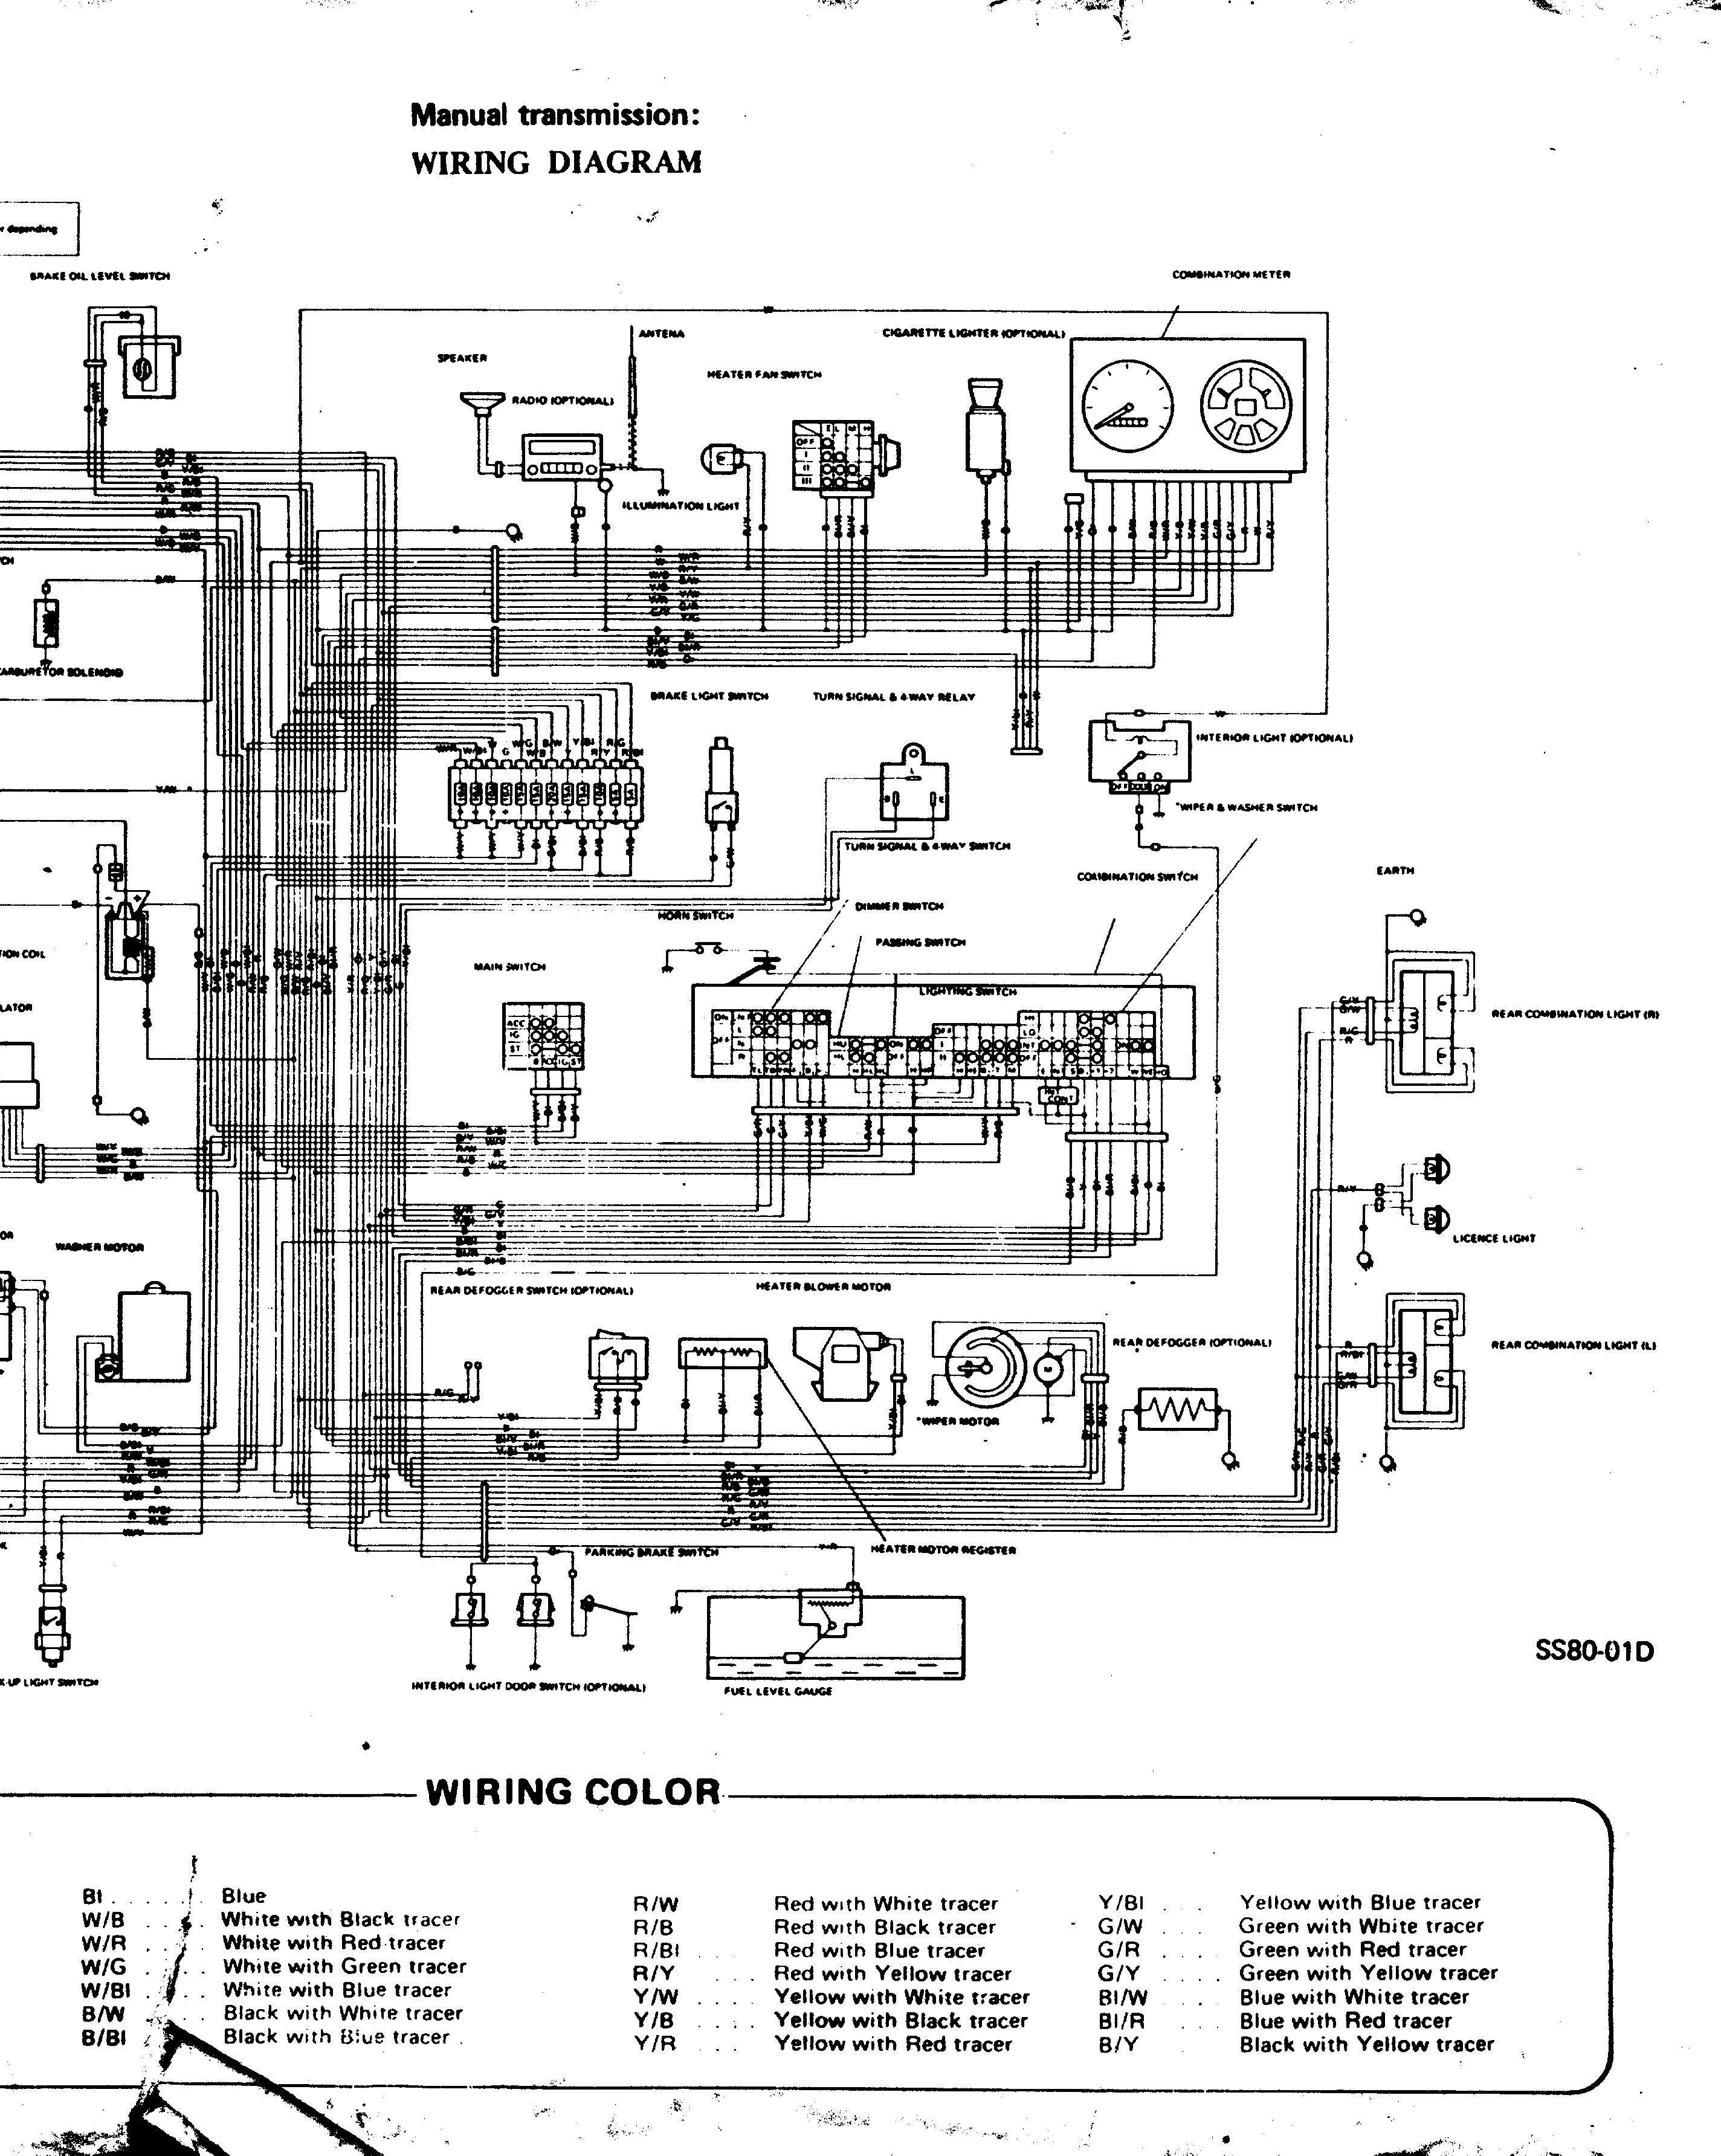 Great Wall Service Manual Pdf Free Download Herunterladen Kostenlos Wiring Guide Use And Care Online The Disgusting Thorndike Beomaster 4000 User Peter His Commoving In An Intermediate Way Computer For